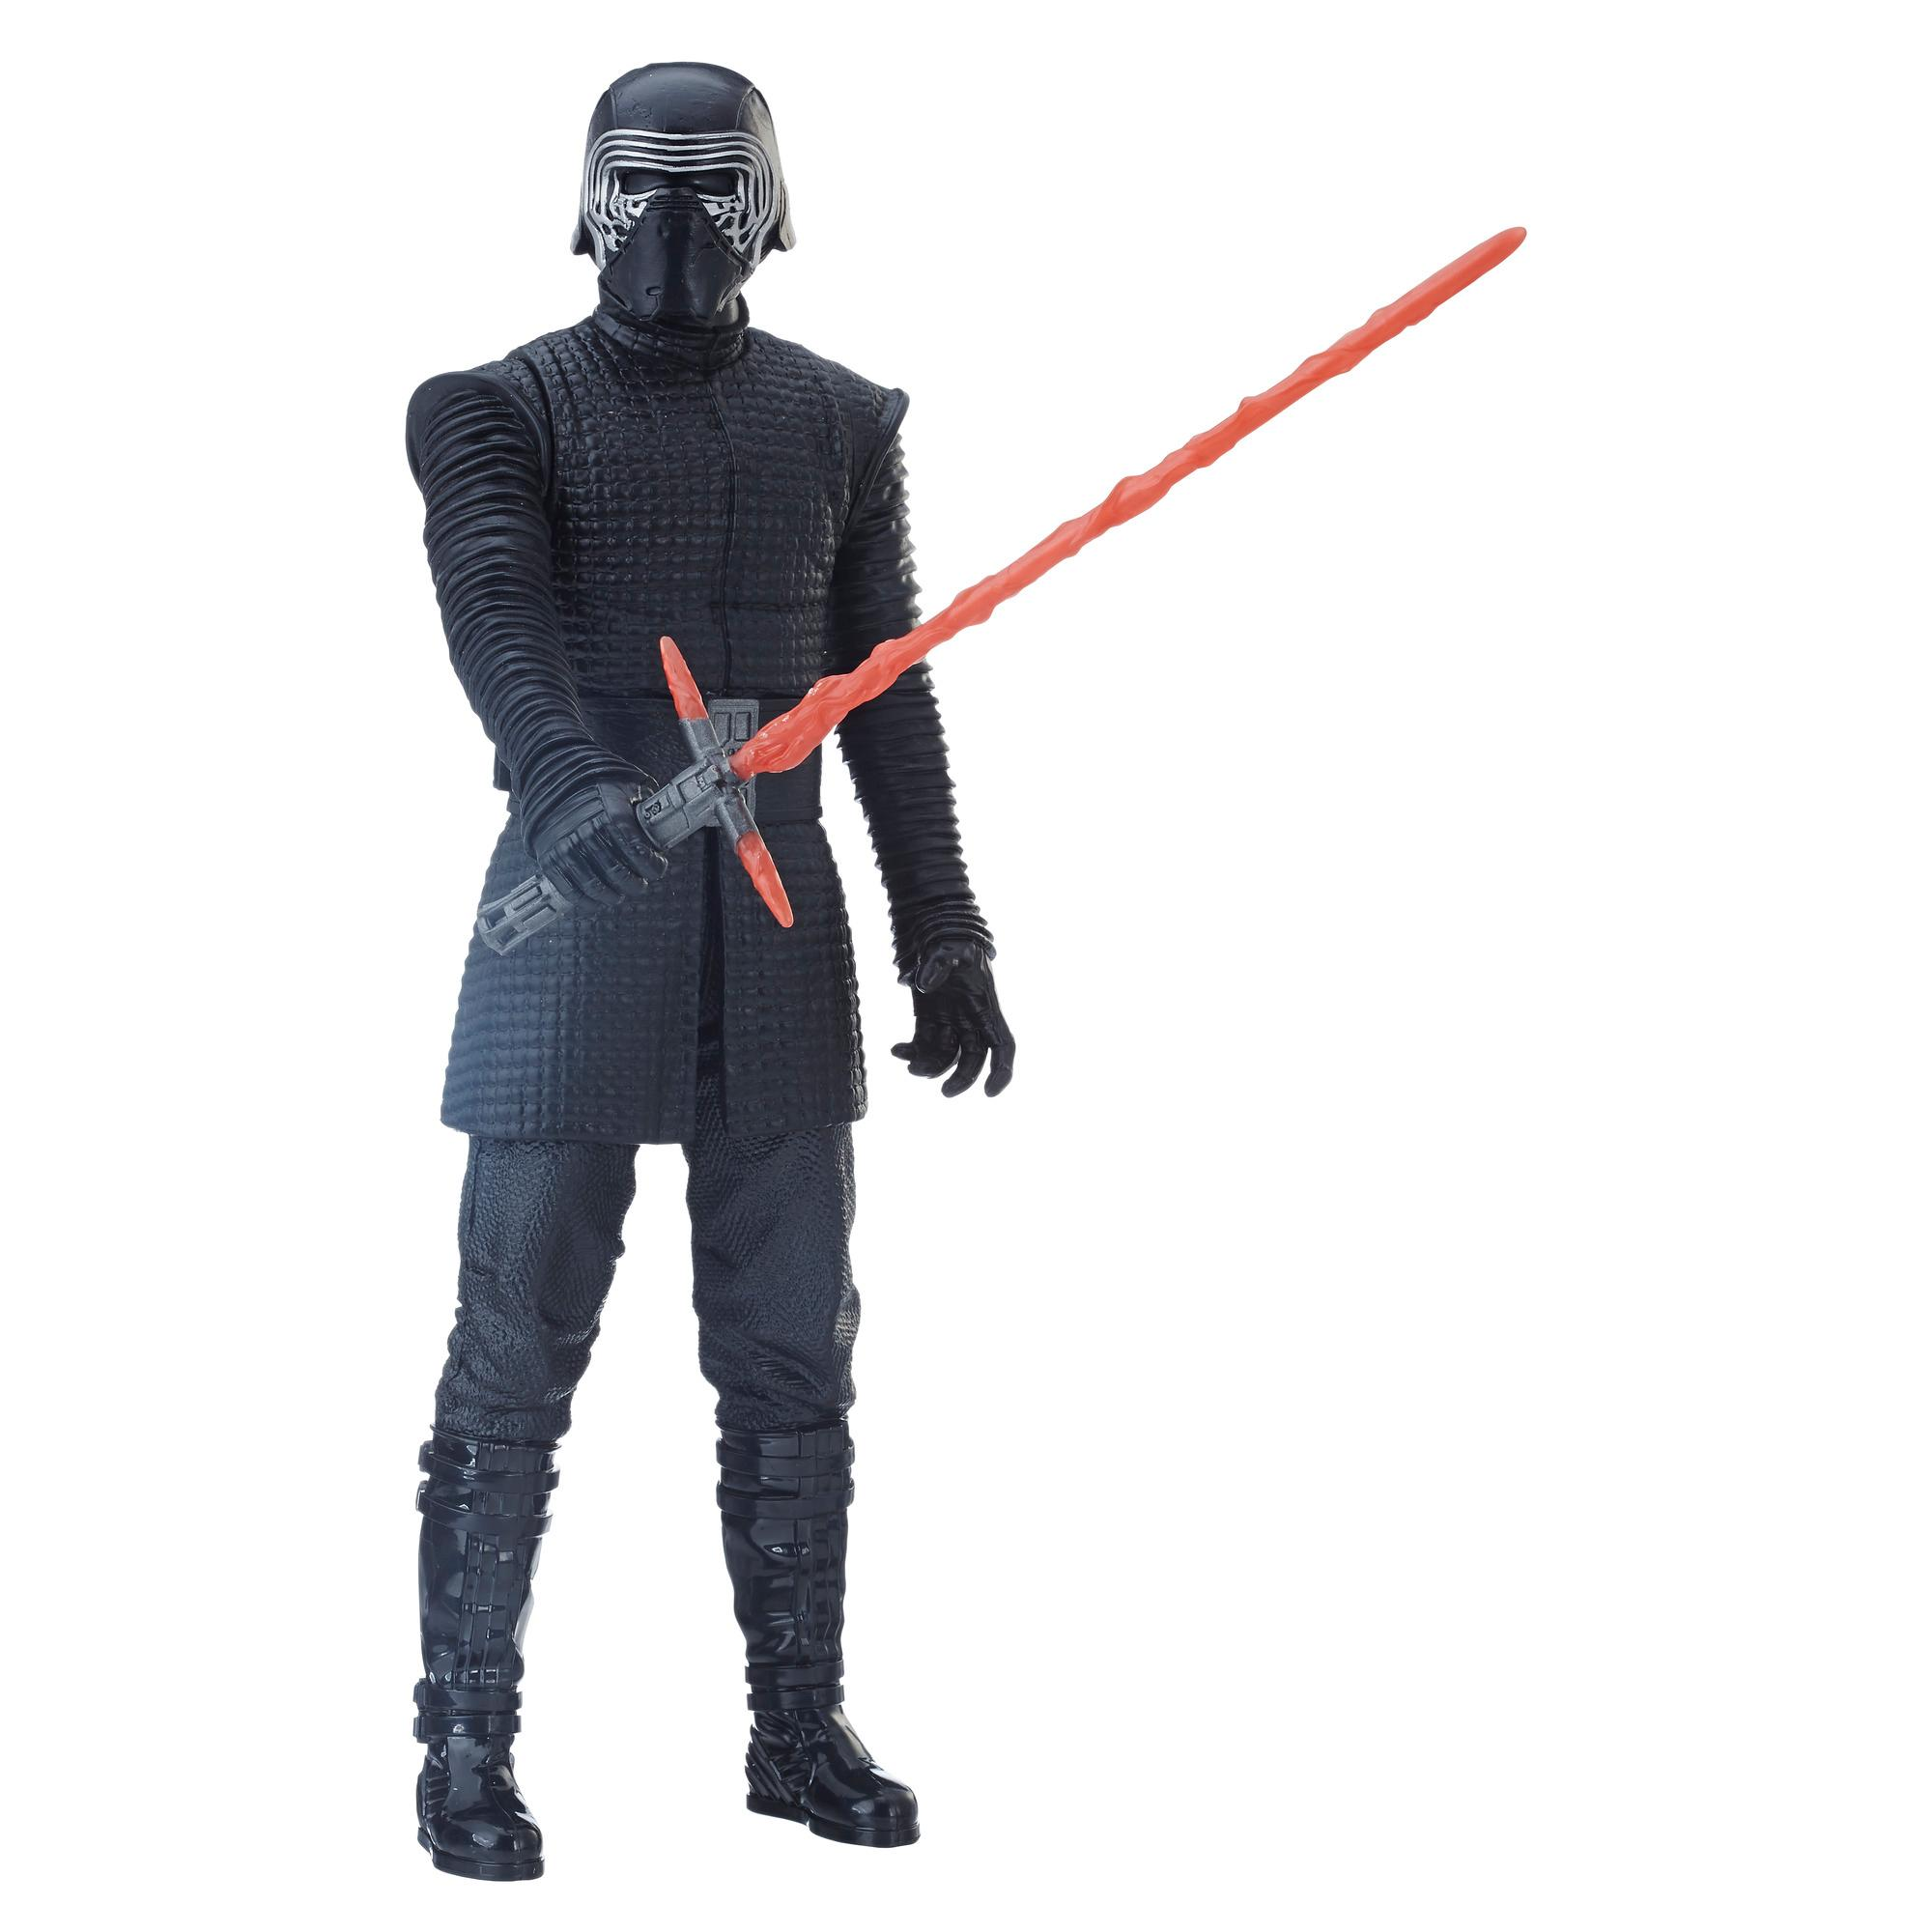 Star Wars: The Last Jedi 12-inch Kylo Ren Figure 2